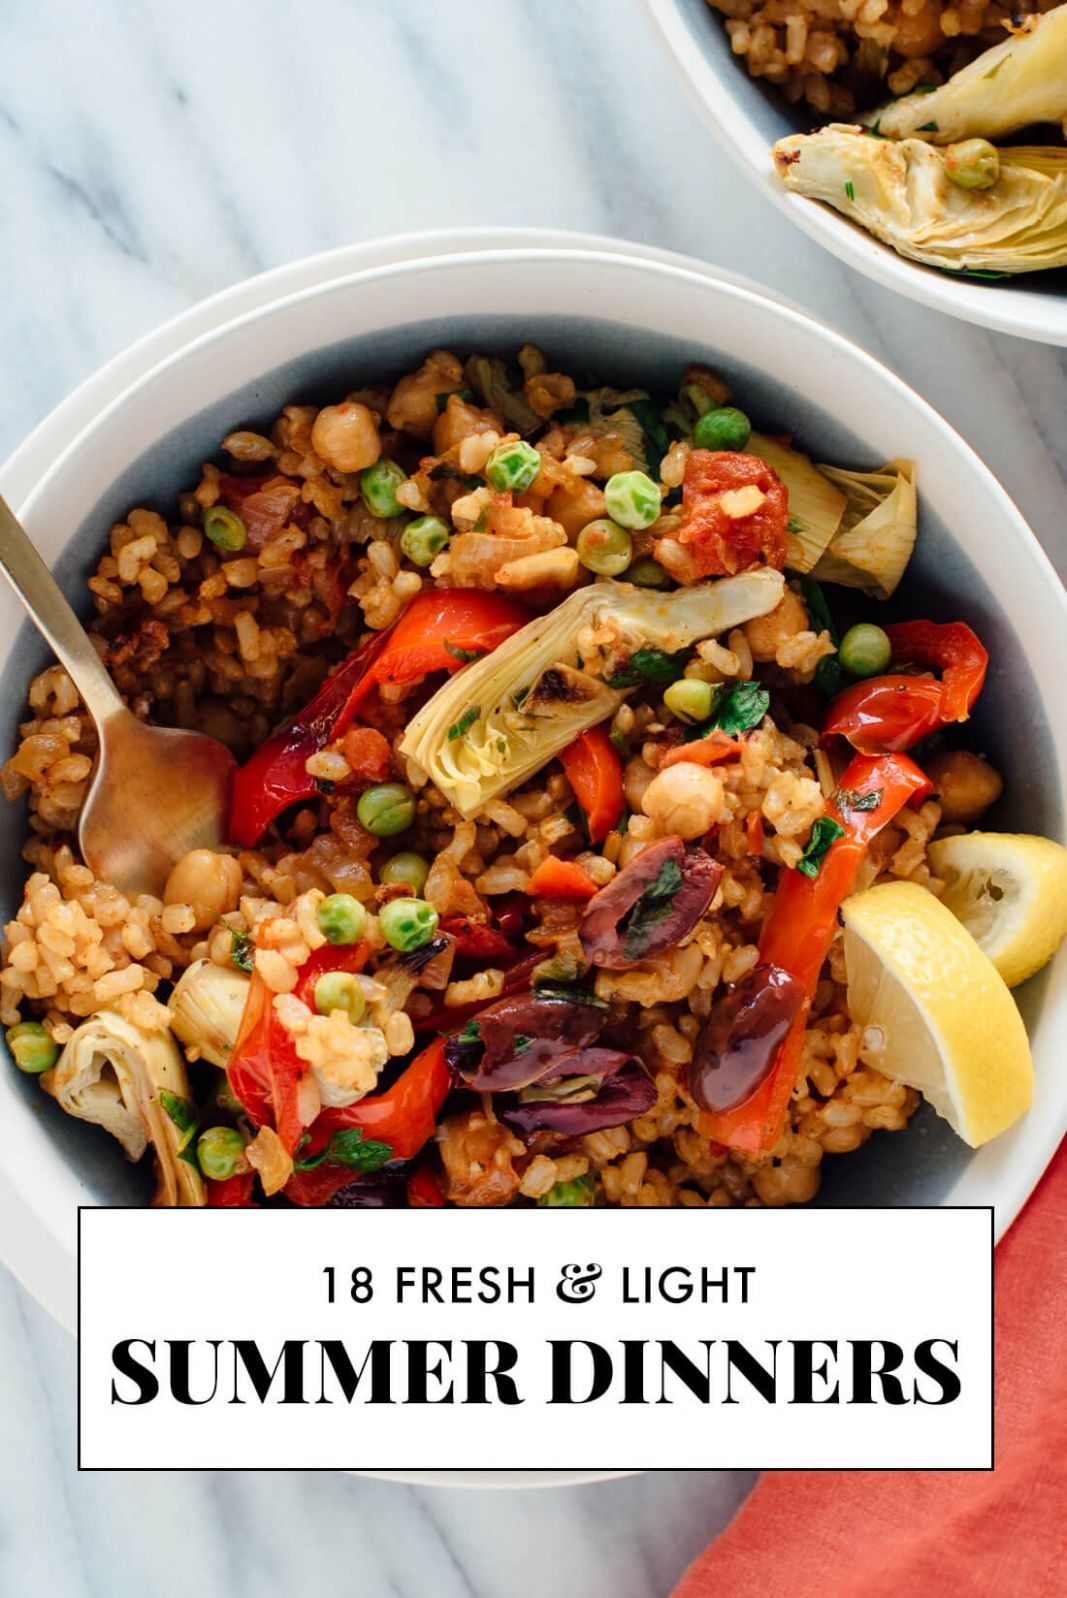 12 Light Summer Dinner Recipes - Cookie and Kate - Recipes Summer Dinner